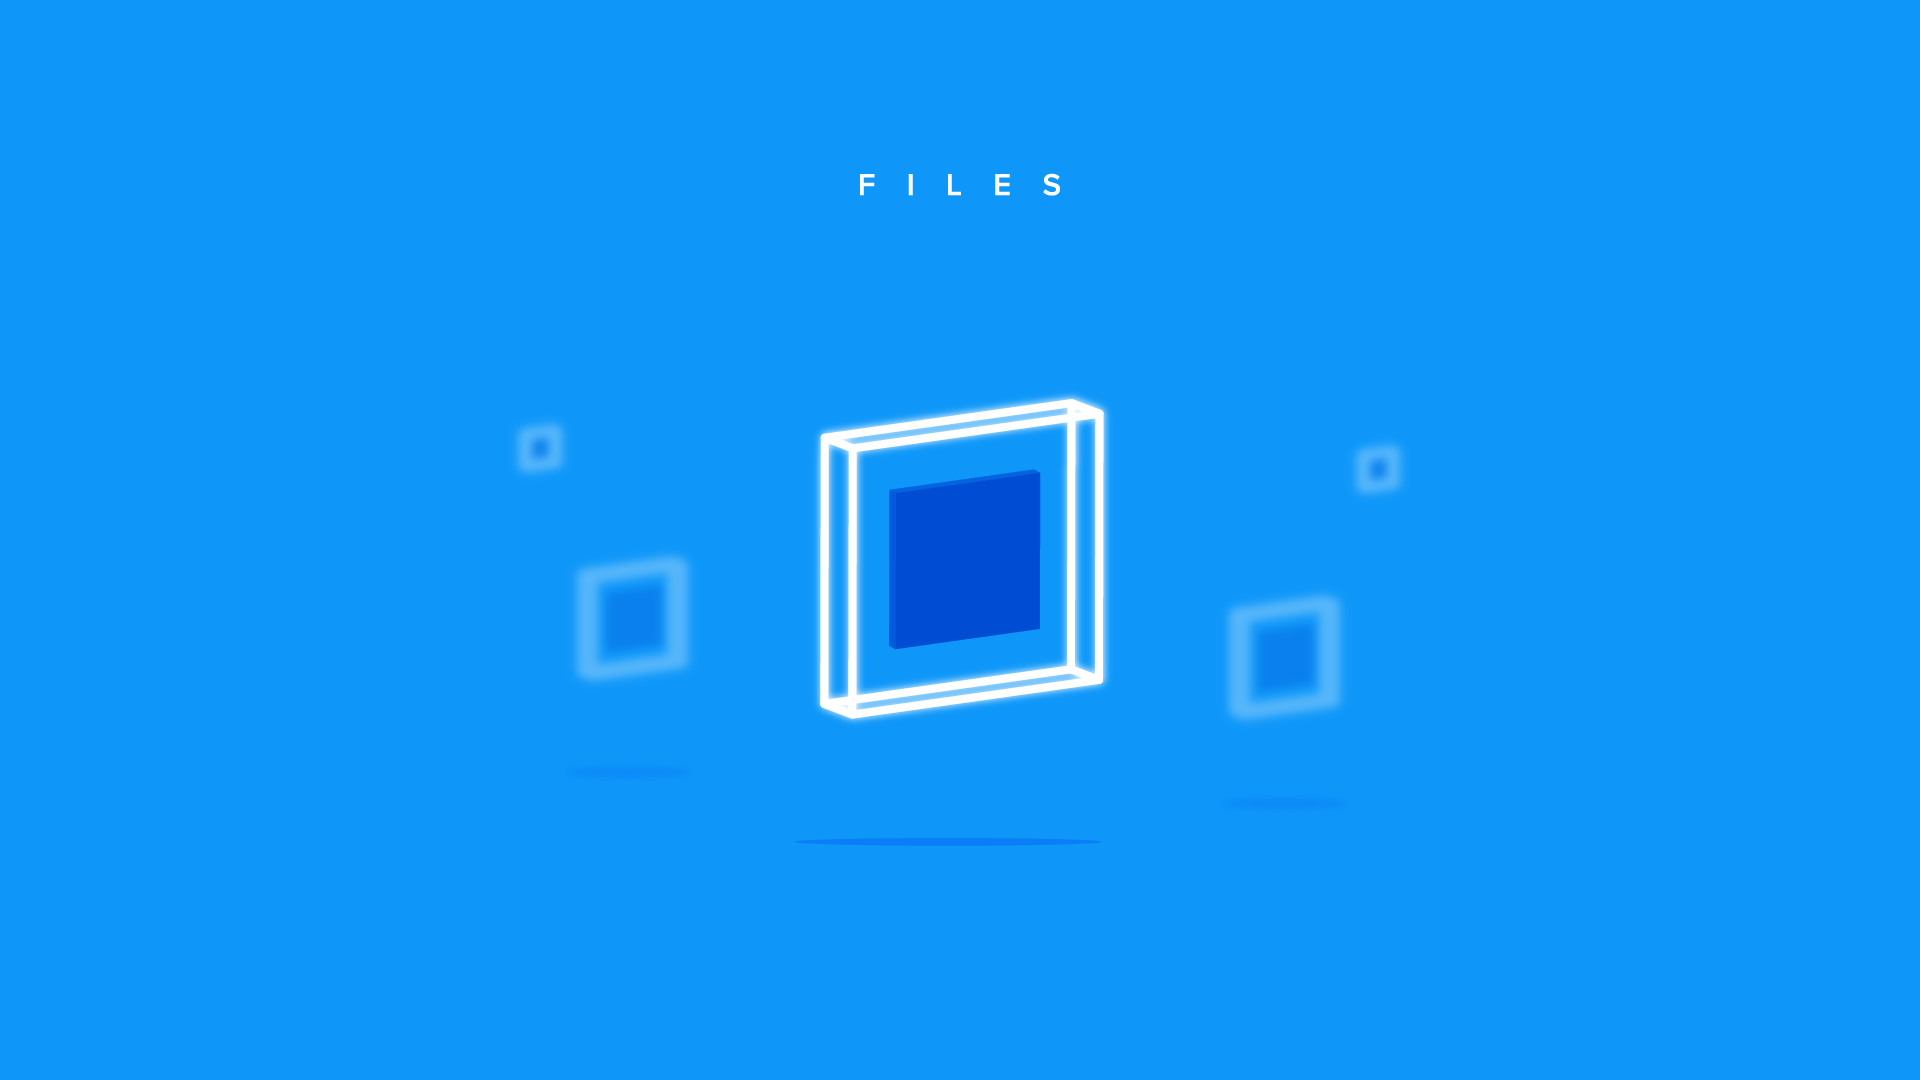 SHAPES-08.png